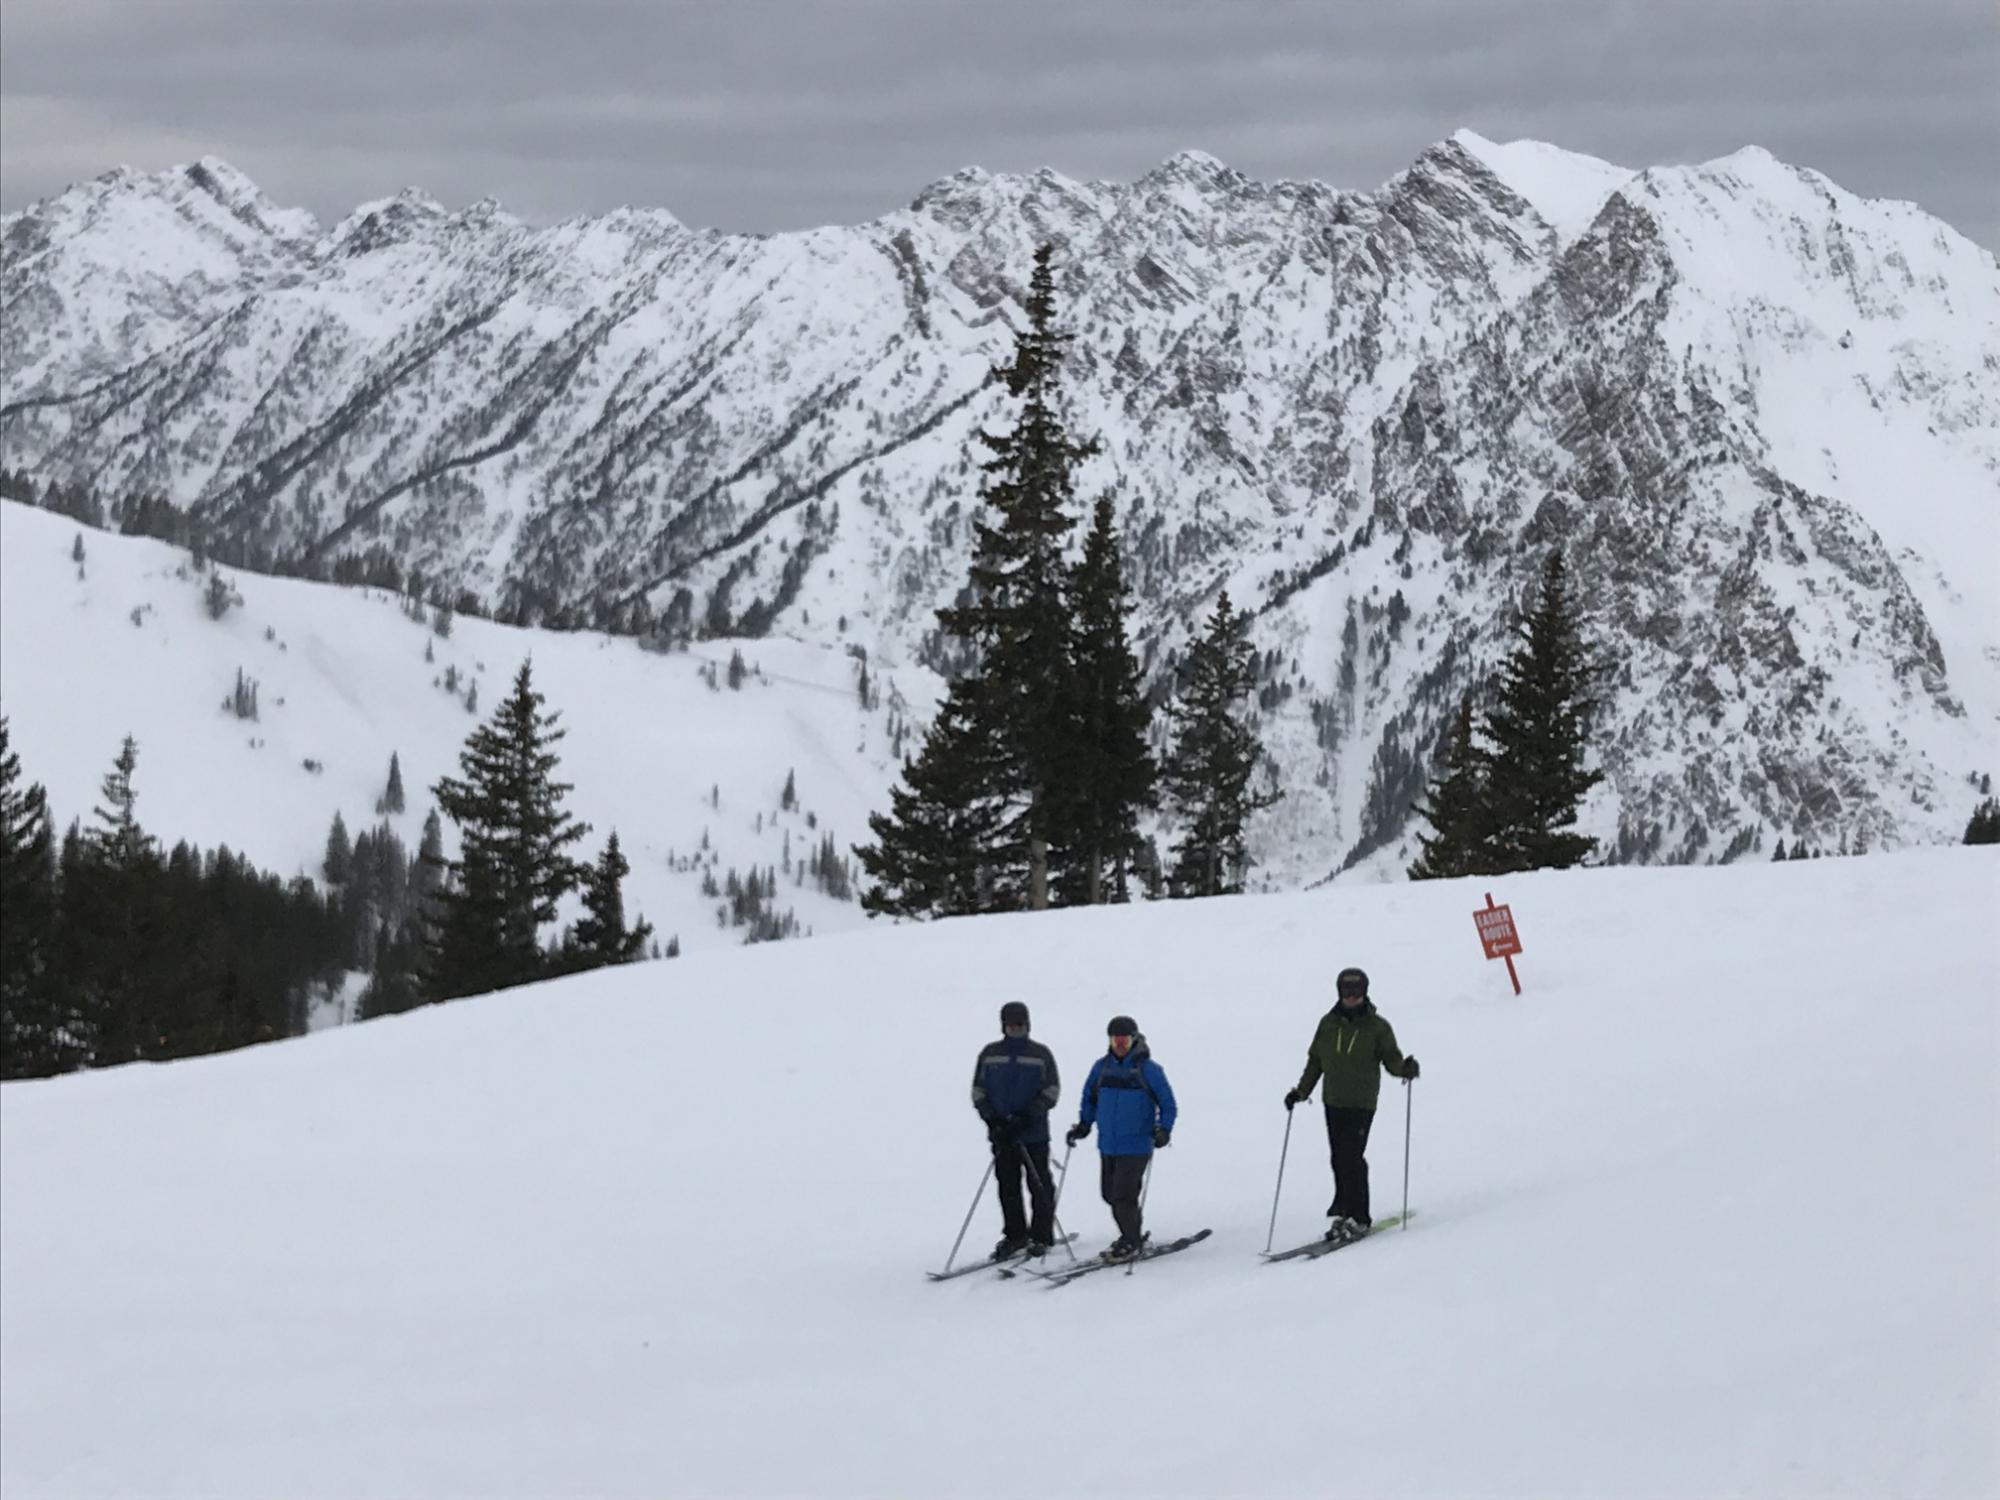 standing around on the slopes of powder mountain